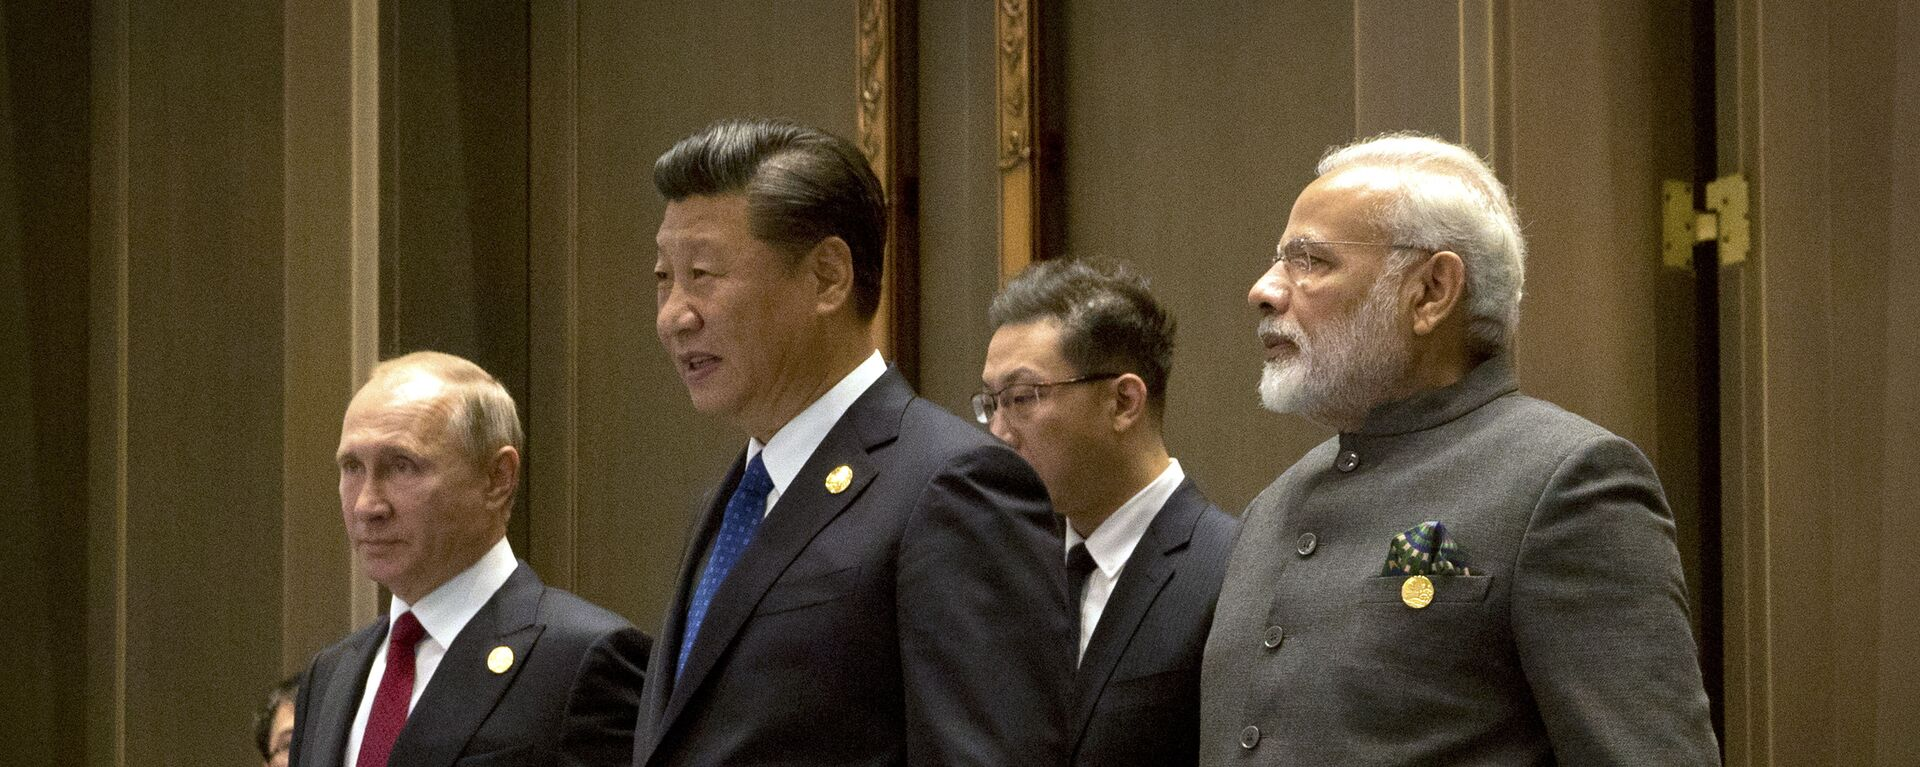 (L to R) Russian President Vladimir Putin, Chinese President Xi Jinping and Indian Prime Minister Narendra Modi arrive for the Dialogue of Emerging Market and Developing Countries on the sidelines of the 2017 BRICS Summit in Xiamen, southeastern China's Fujian Province on September 5, 2017 - Sputnik International, 1920, 09.09.2021